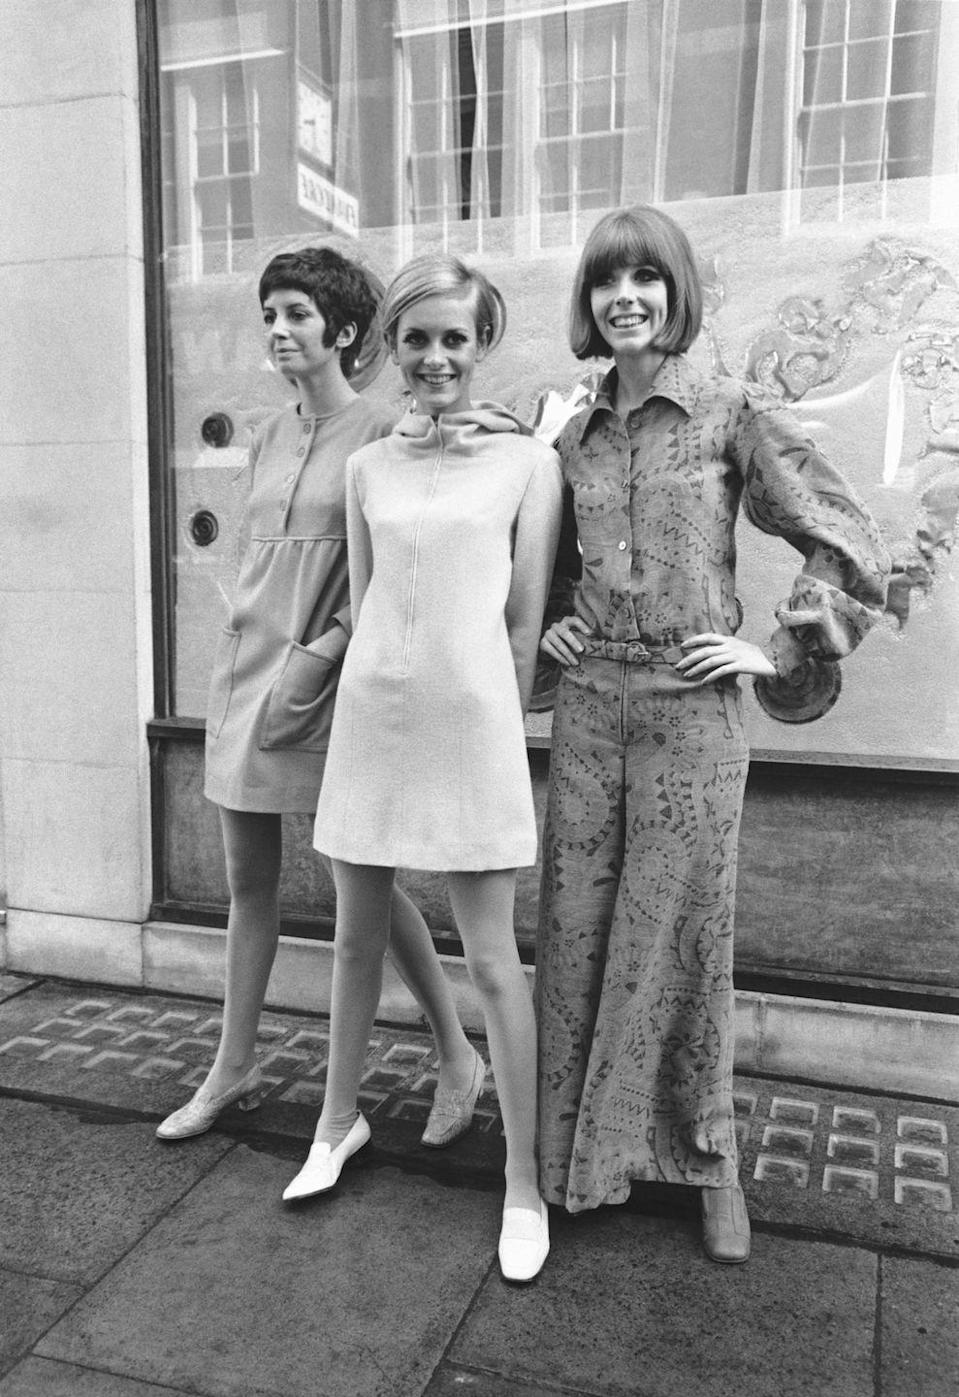 <p>In the late '60s, British supermodel Twiggy set the tone for much of the decade's street style. In this hooded dress, alongside Jenny Russell and Diane De La Roche, she brings the mod movement to the forefront.</p>